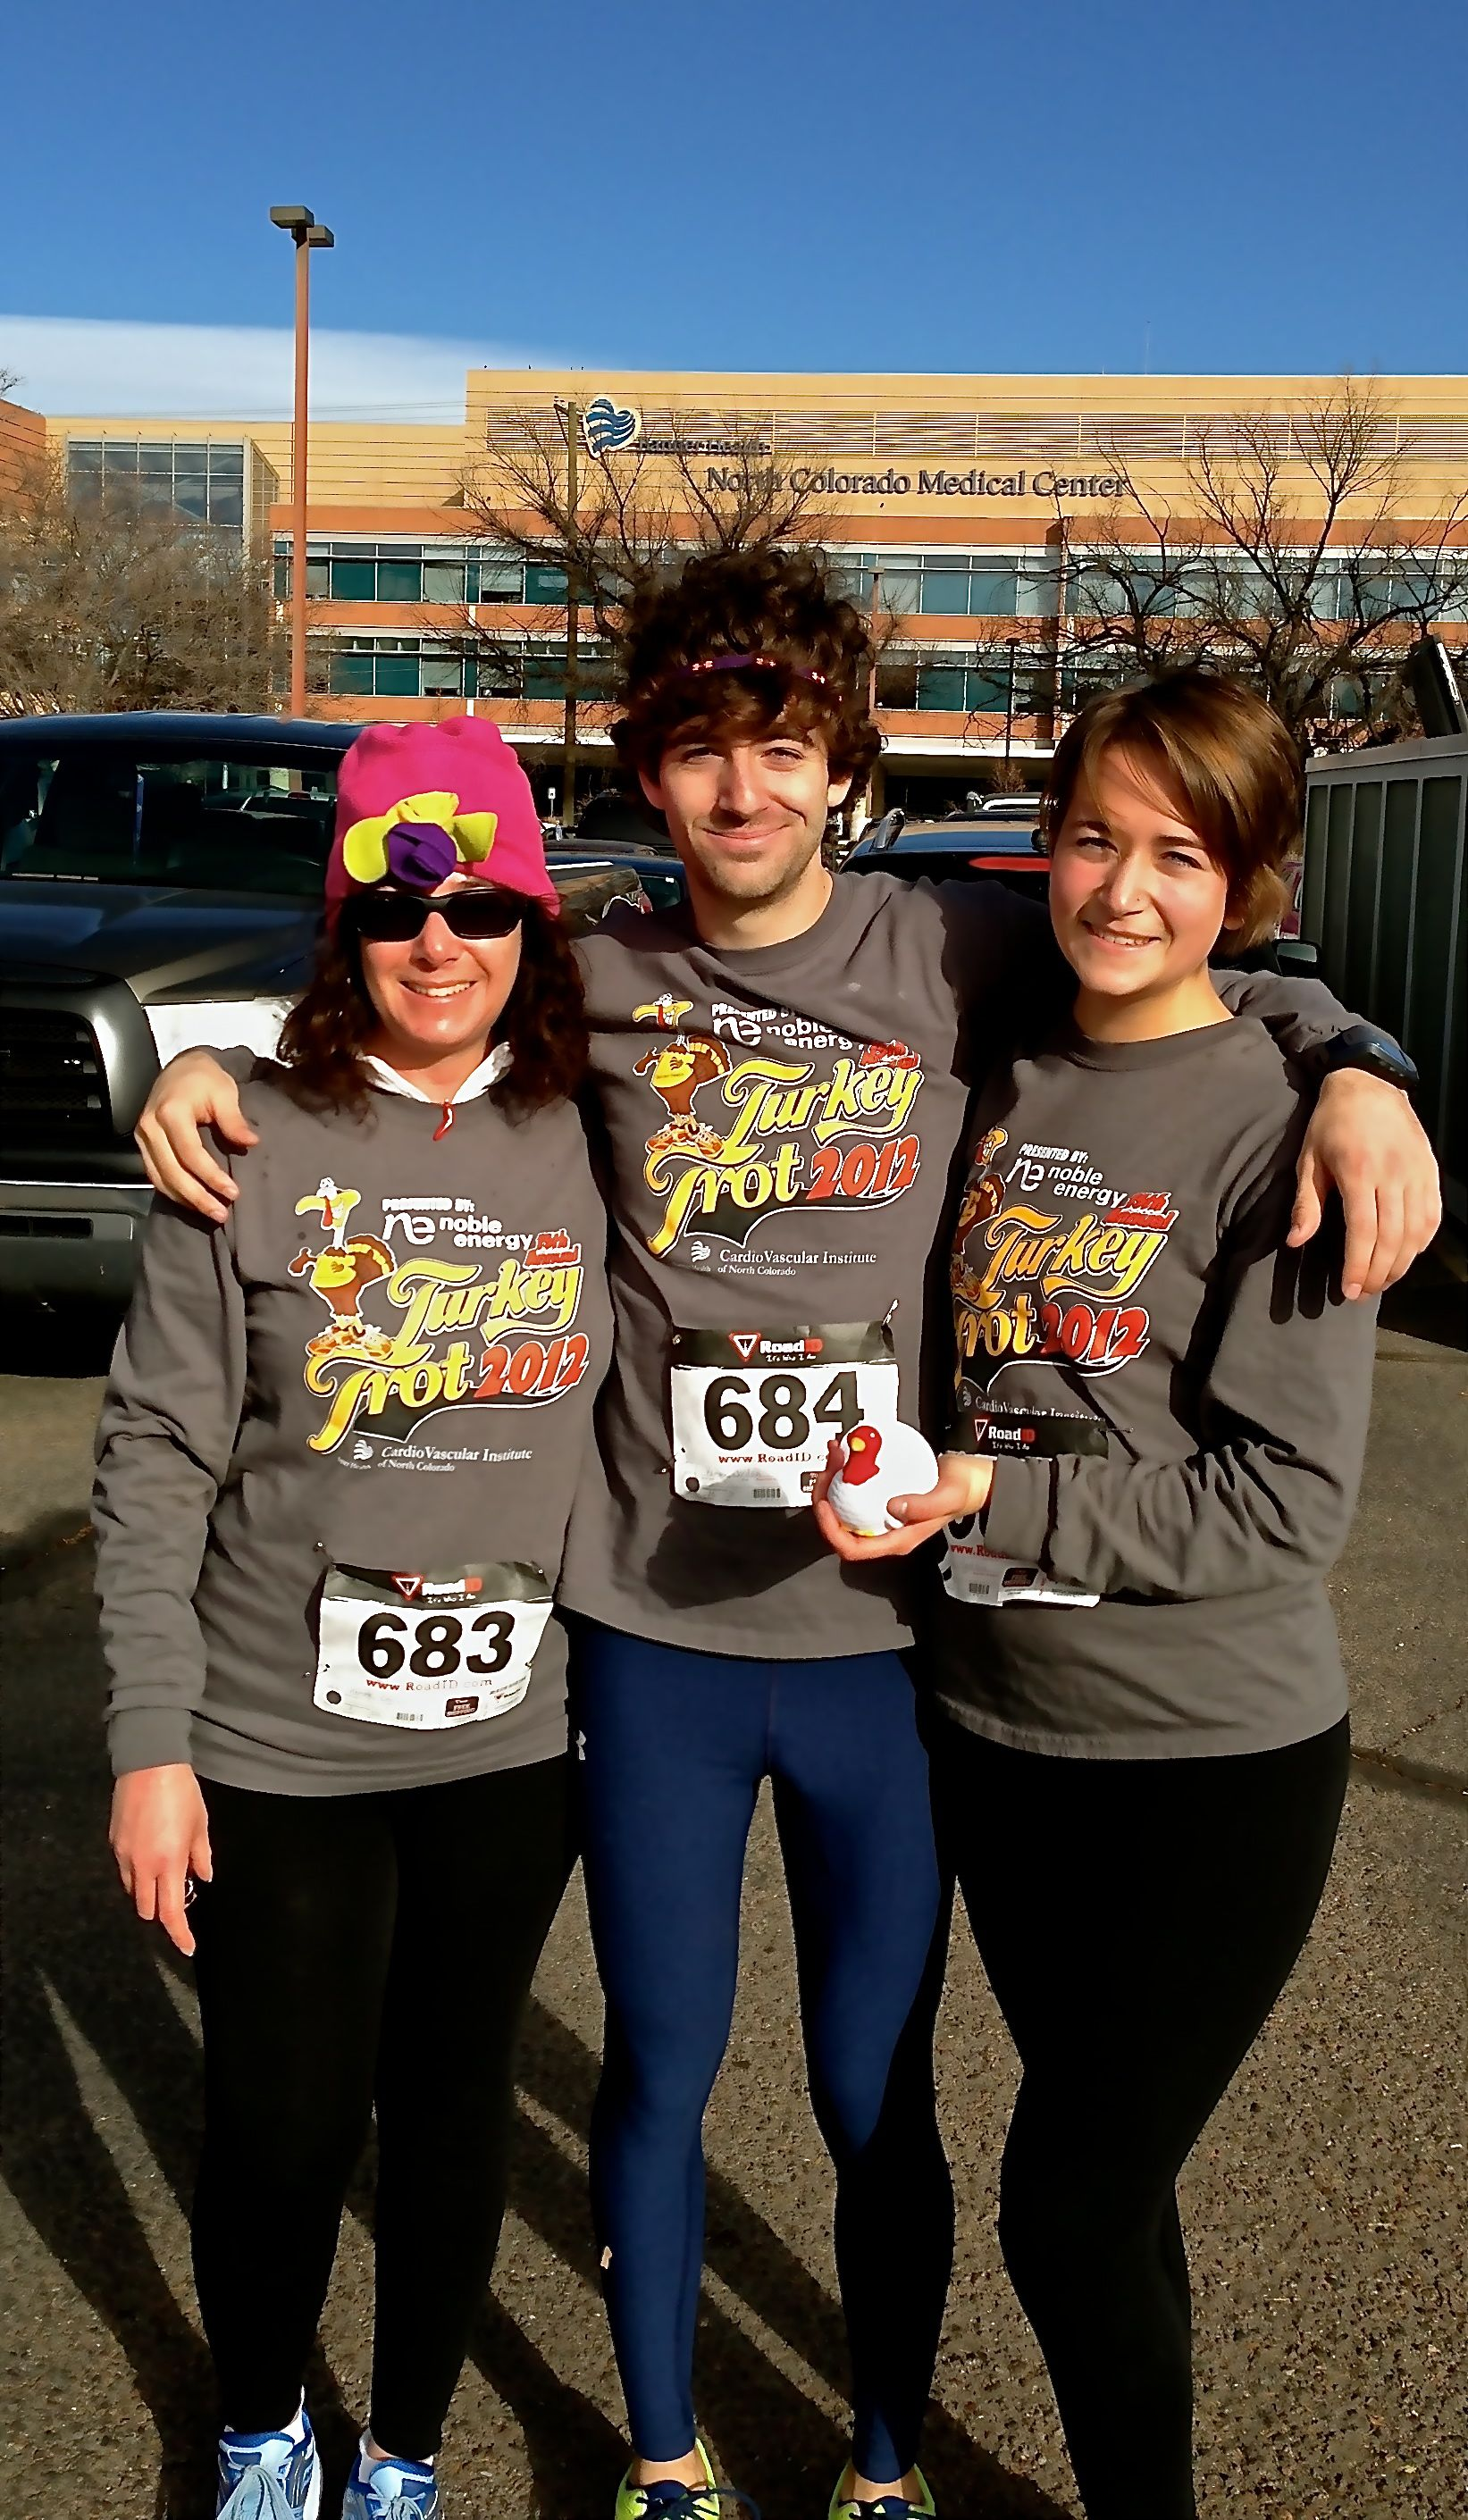 The First Annual Two Brats + A Mom 5K Turkey Trot. Five months ago, I couldn't run a tenth of a mile. It's amazing where your kid's suggestion might lead.